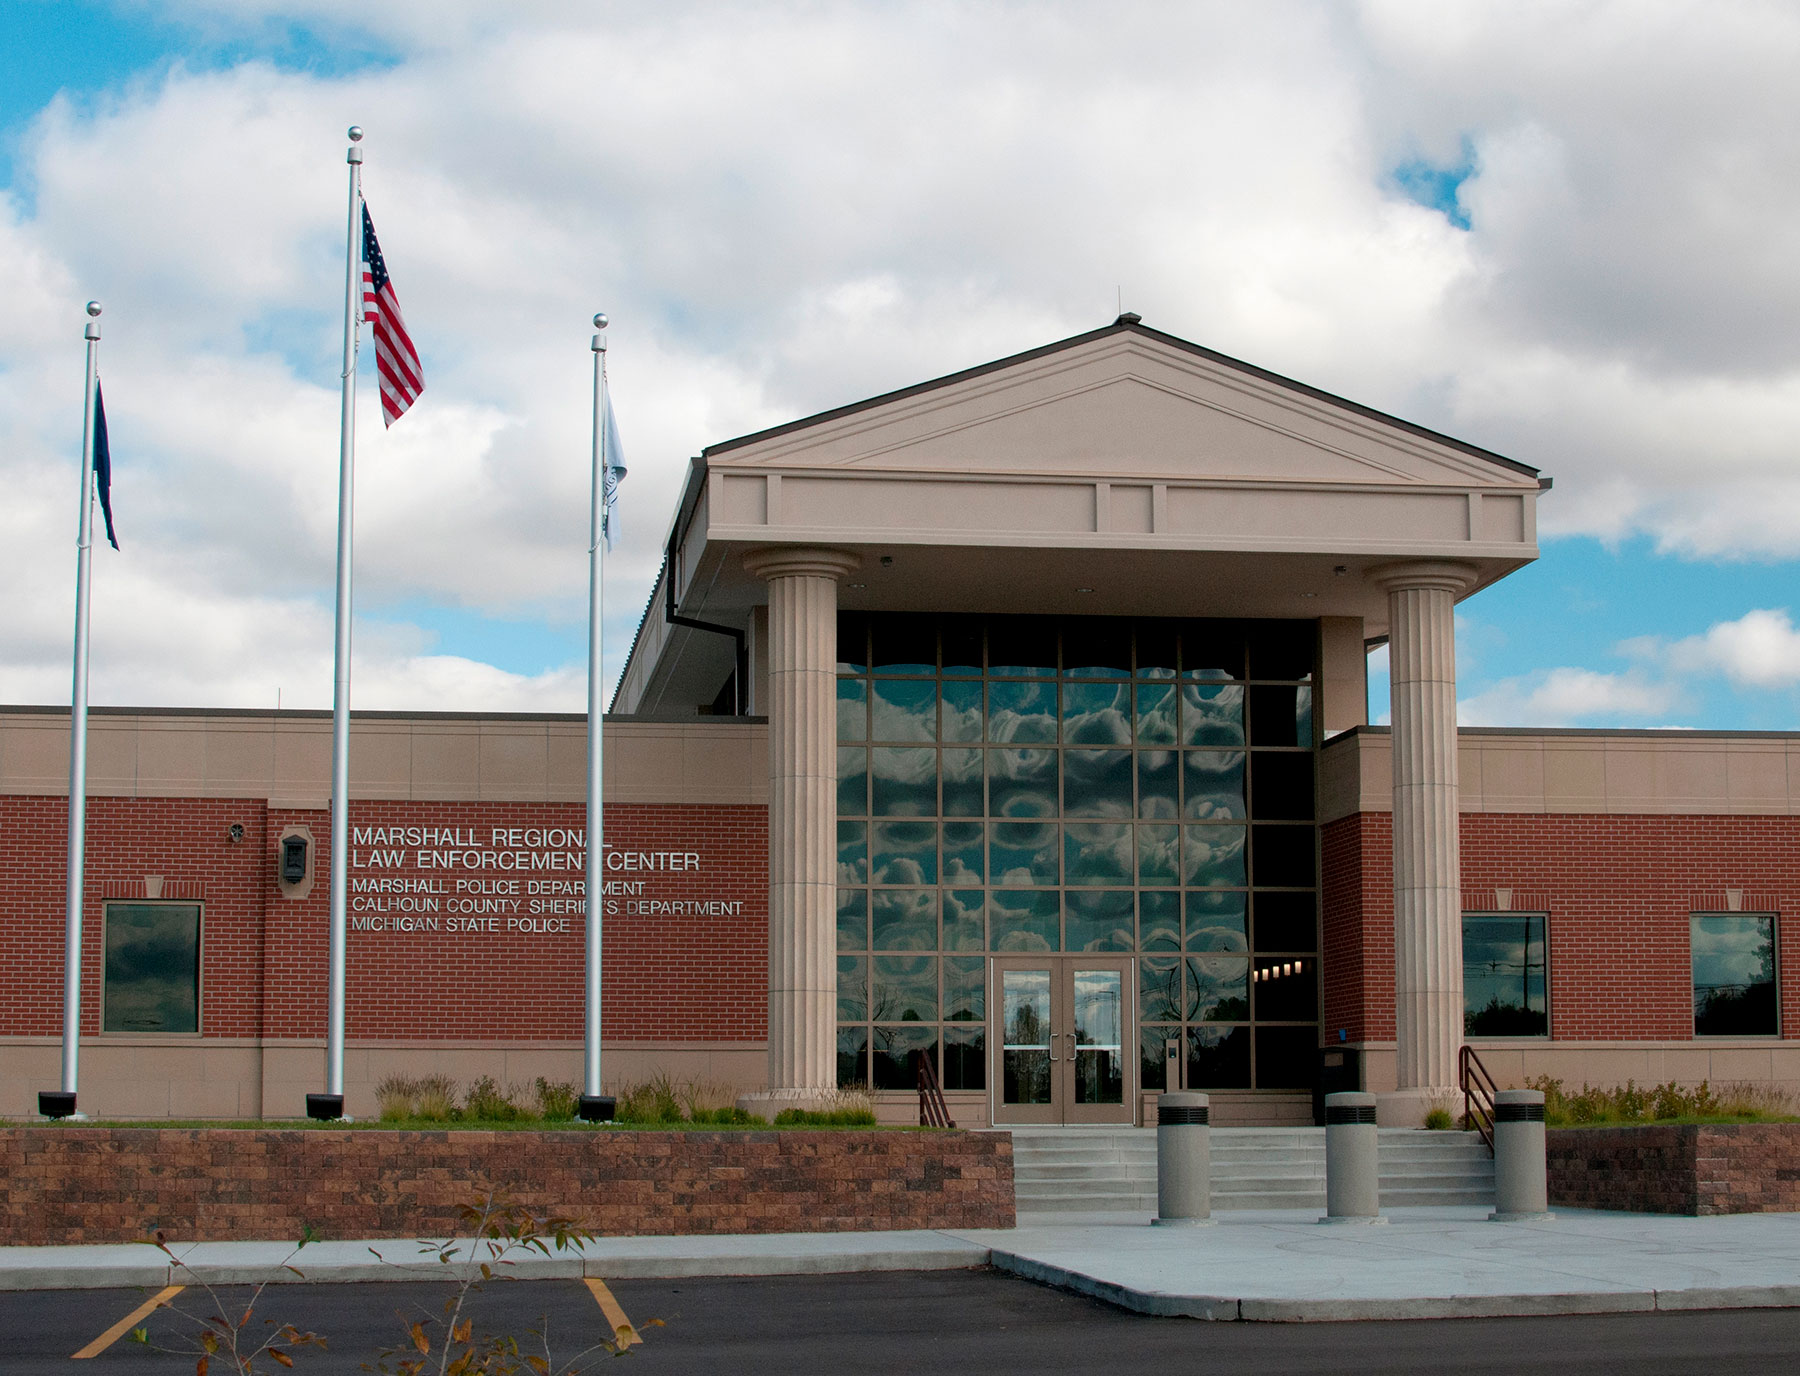 Marshall Regional Law Enforcement Center - Redstone